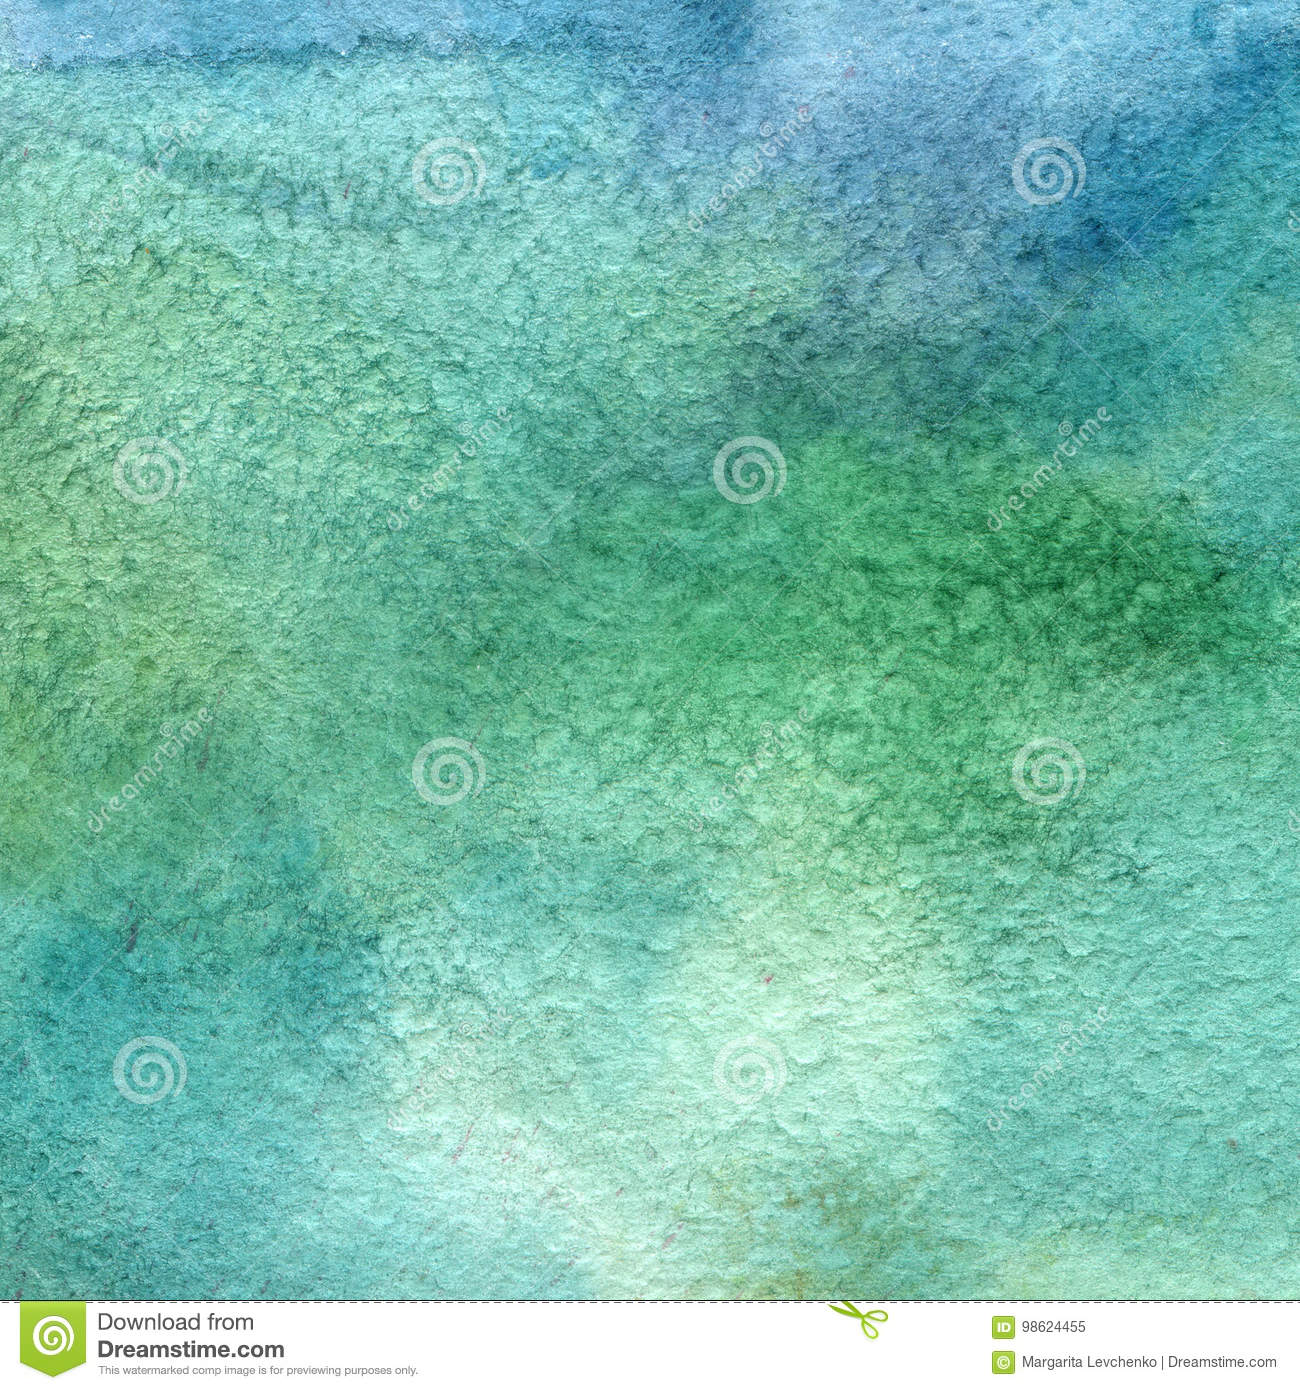 Illustration of a watercolor texture of blue and green colors. Watercolor abstract background, blots, blur, fill, print, spray, ru